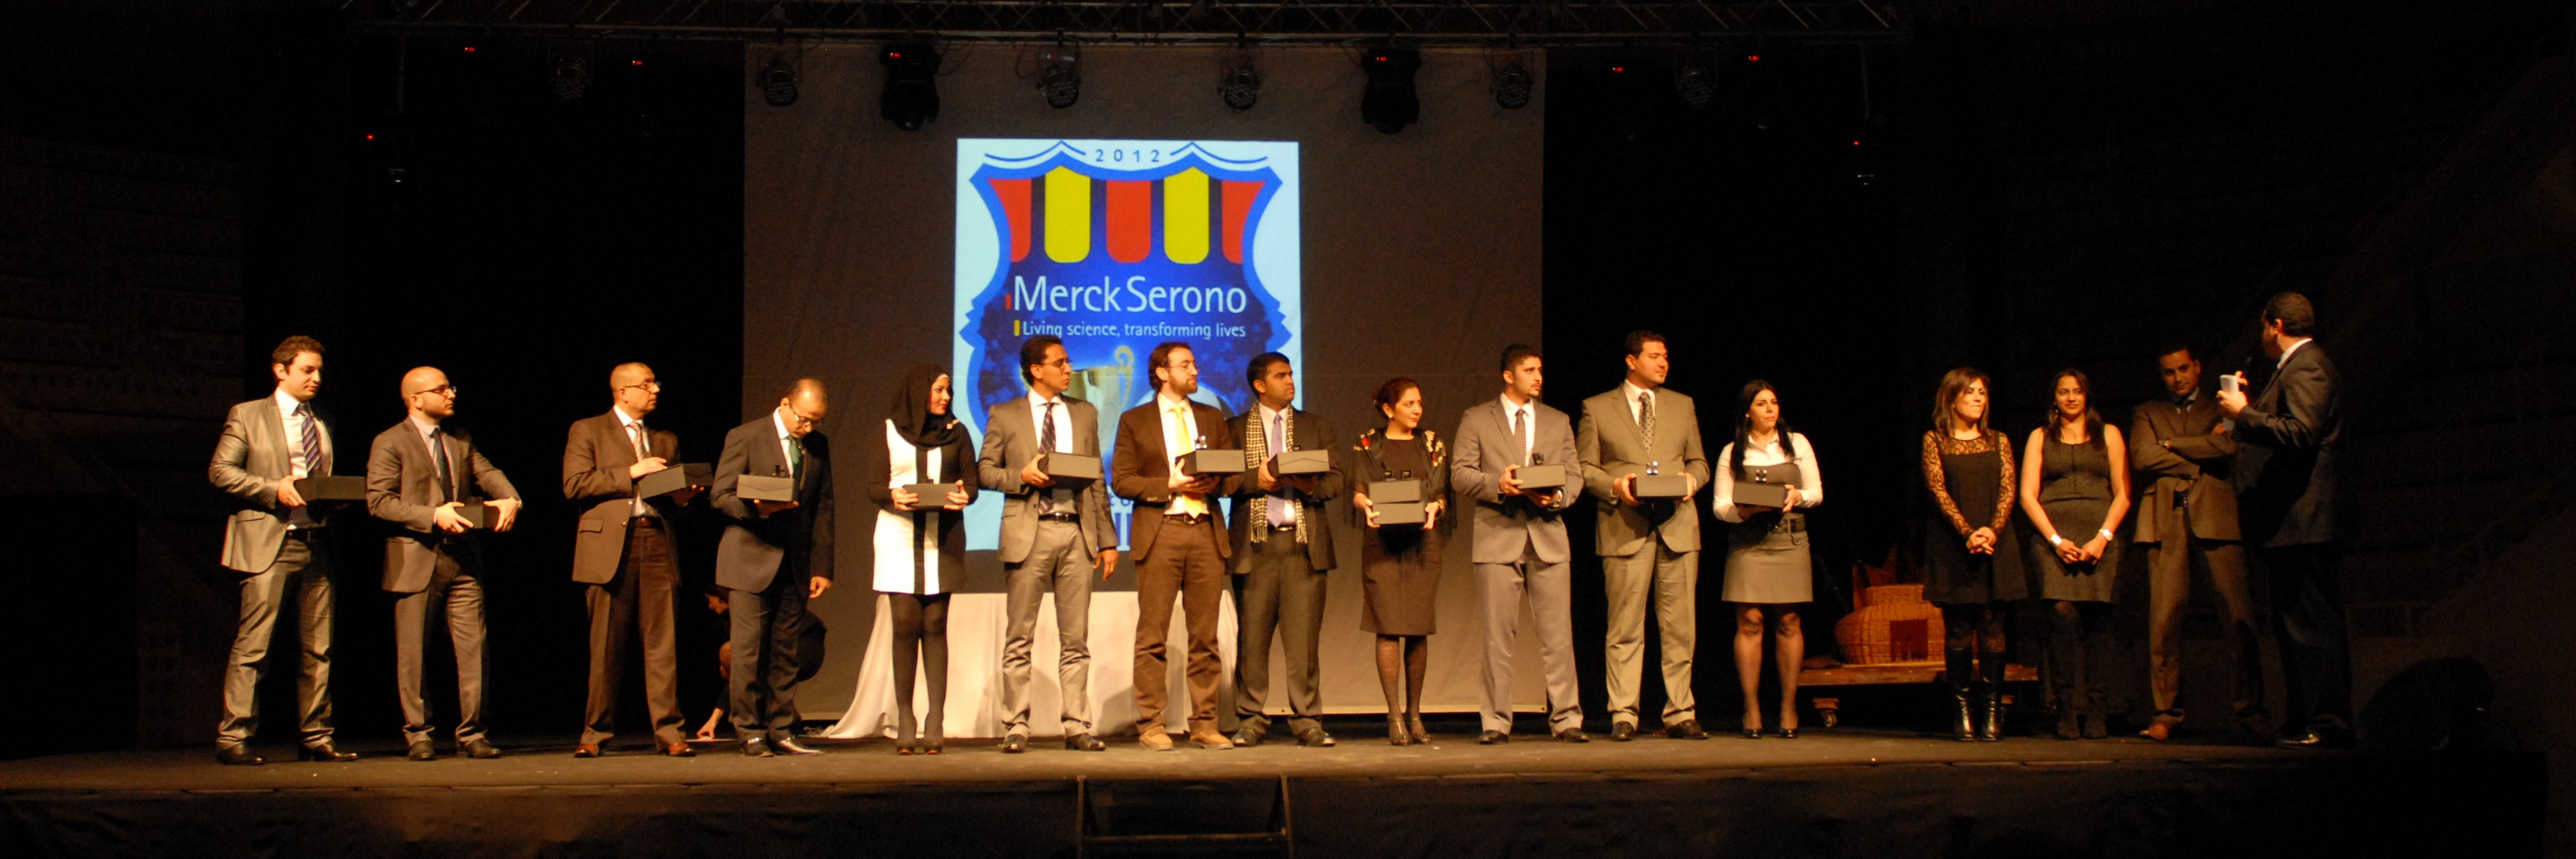 Project: Merck Serono Middle East - 200 Pax - Awards Gala Dinner at MNAC - Barcelona 2012